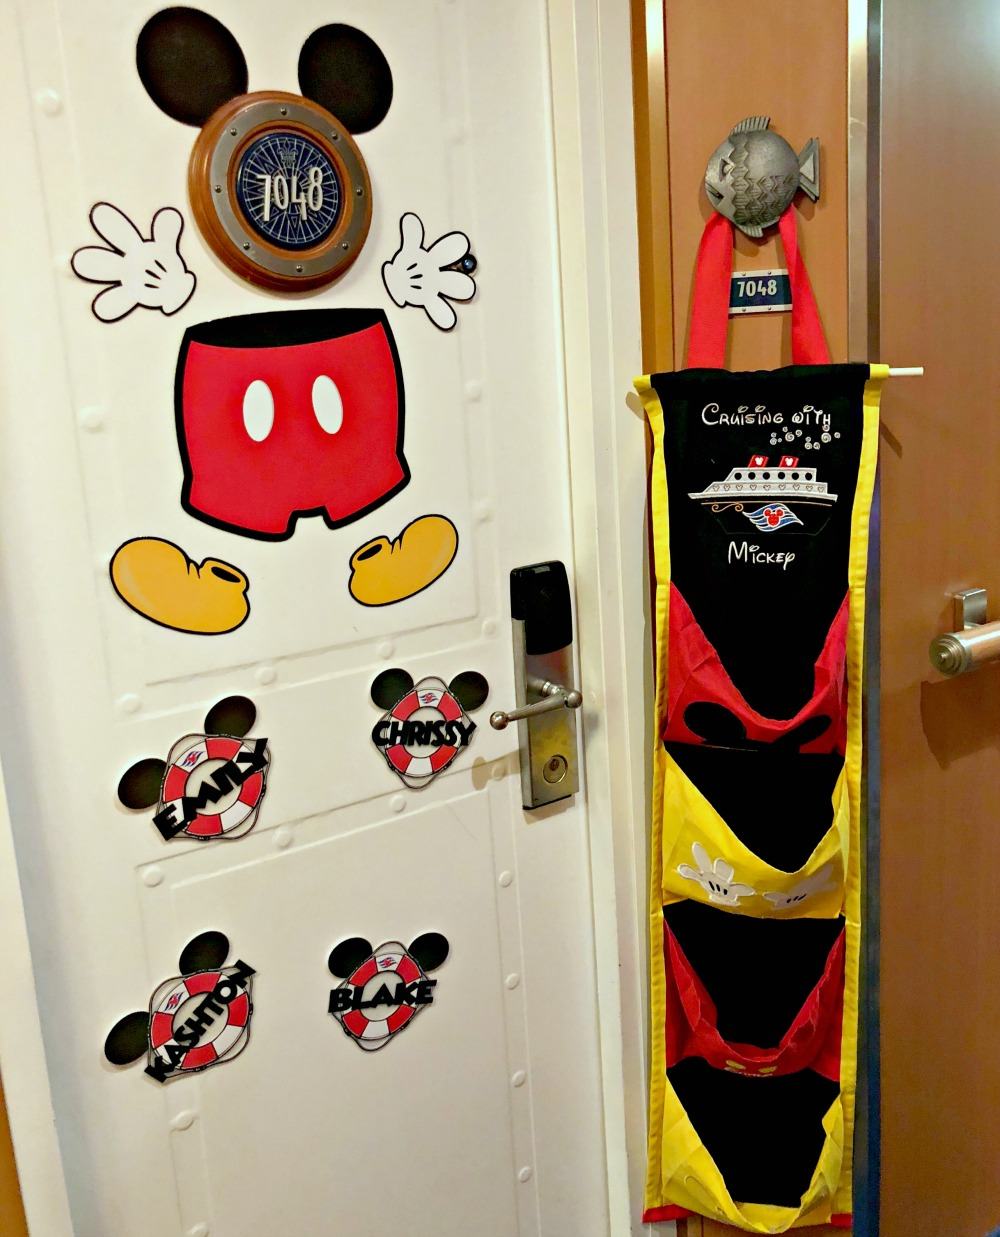 How to decorate your door for a disney cruise // 20 Things You Need to Know Before your Disney Cruise